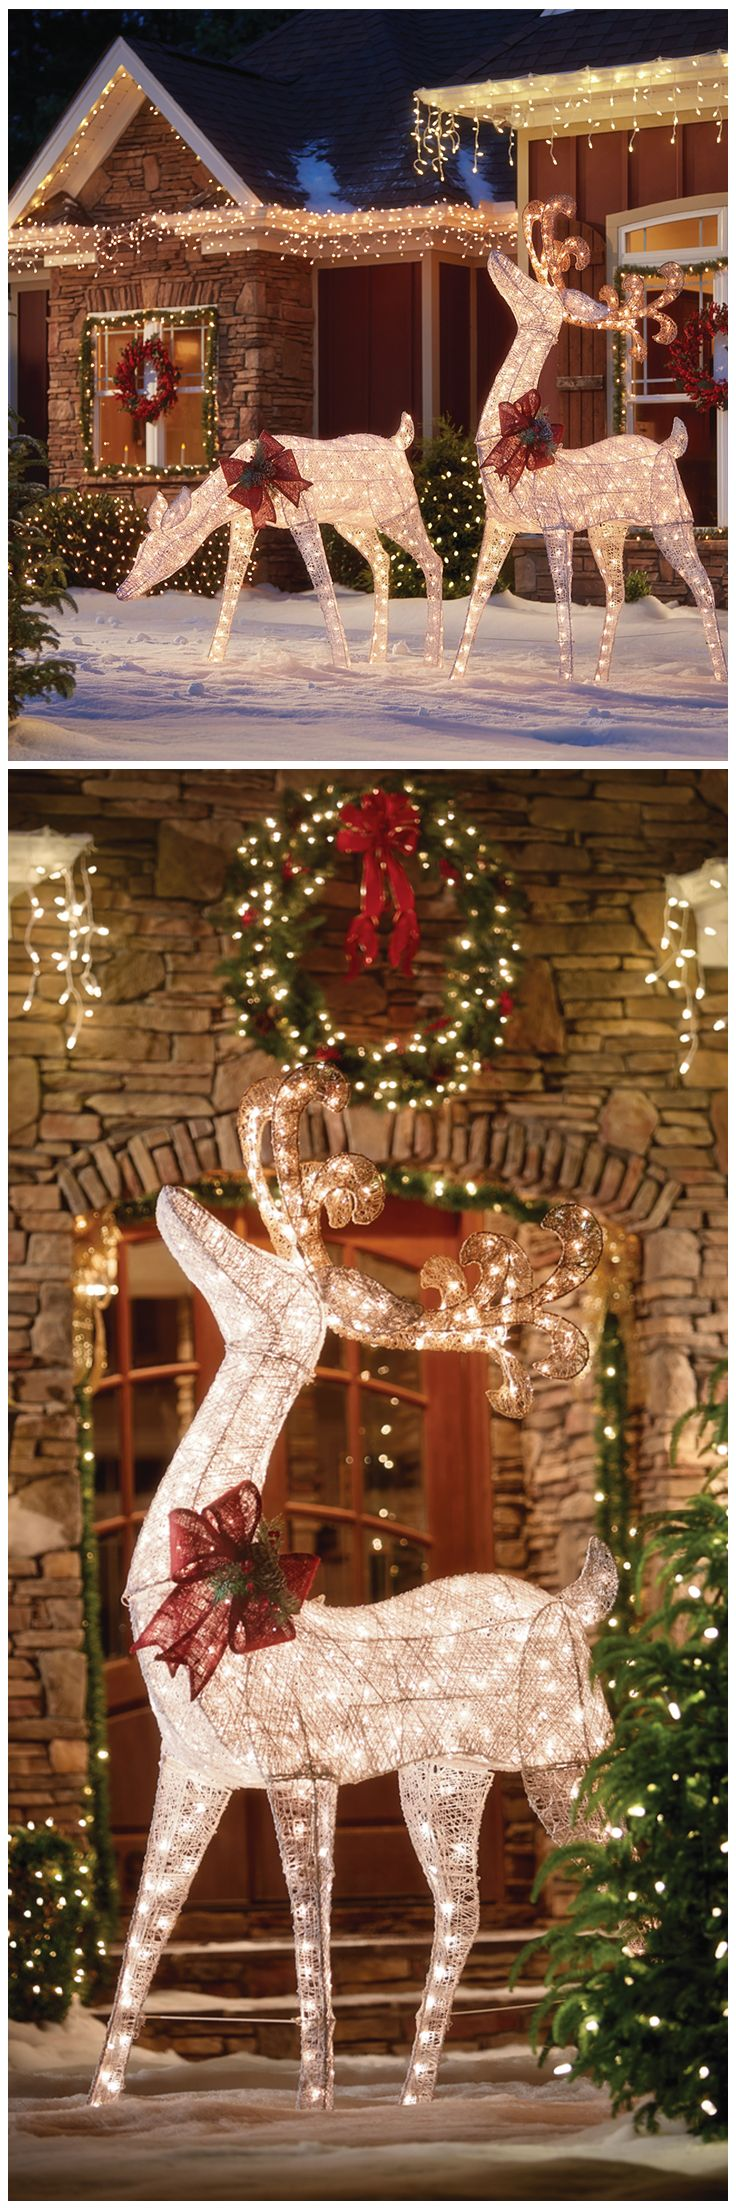 Lighted christmas duck outdoor yard decor - These Luminous Deer Figures Will Add A Classic Rustic Charm To Your Outdoor Christmas D Cor